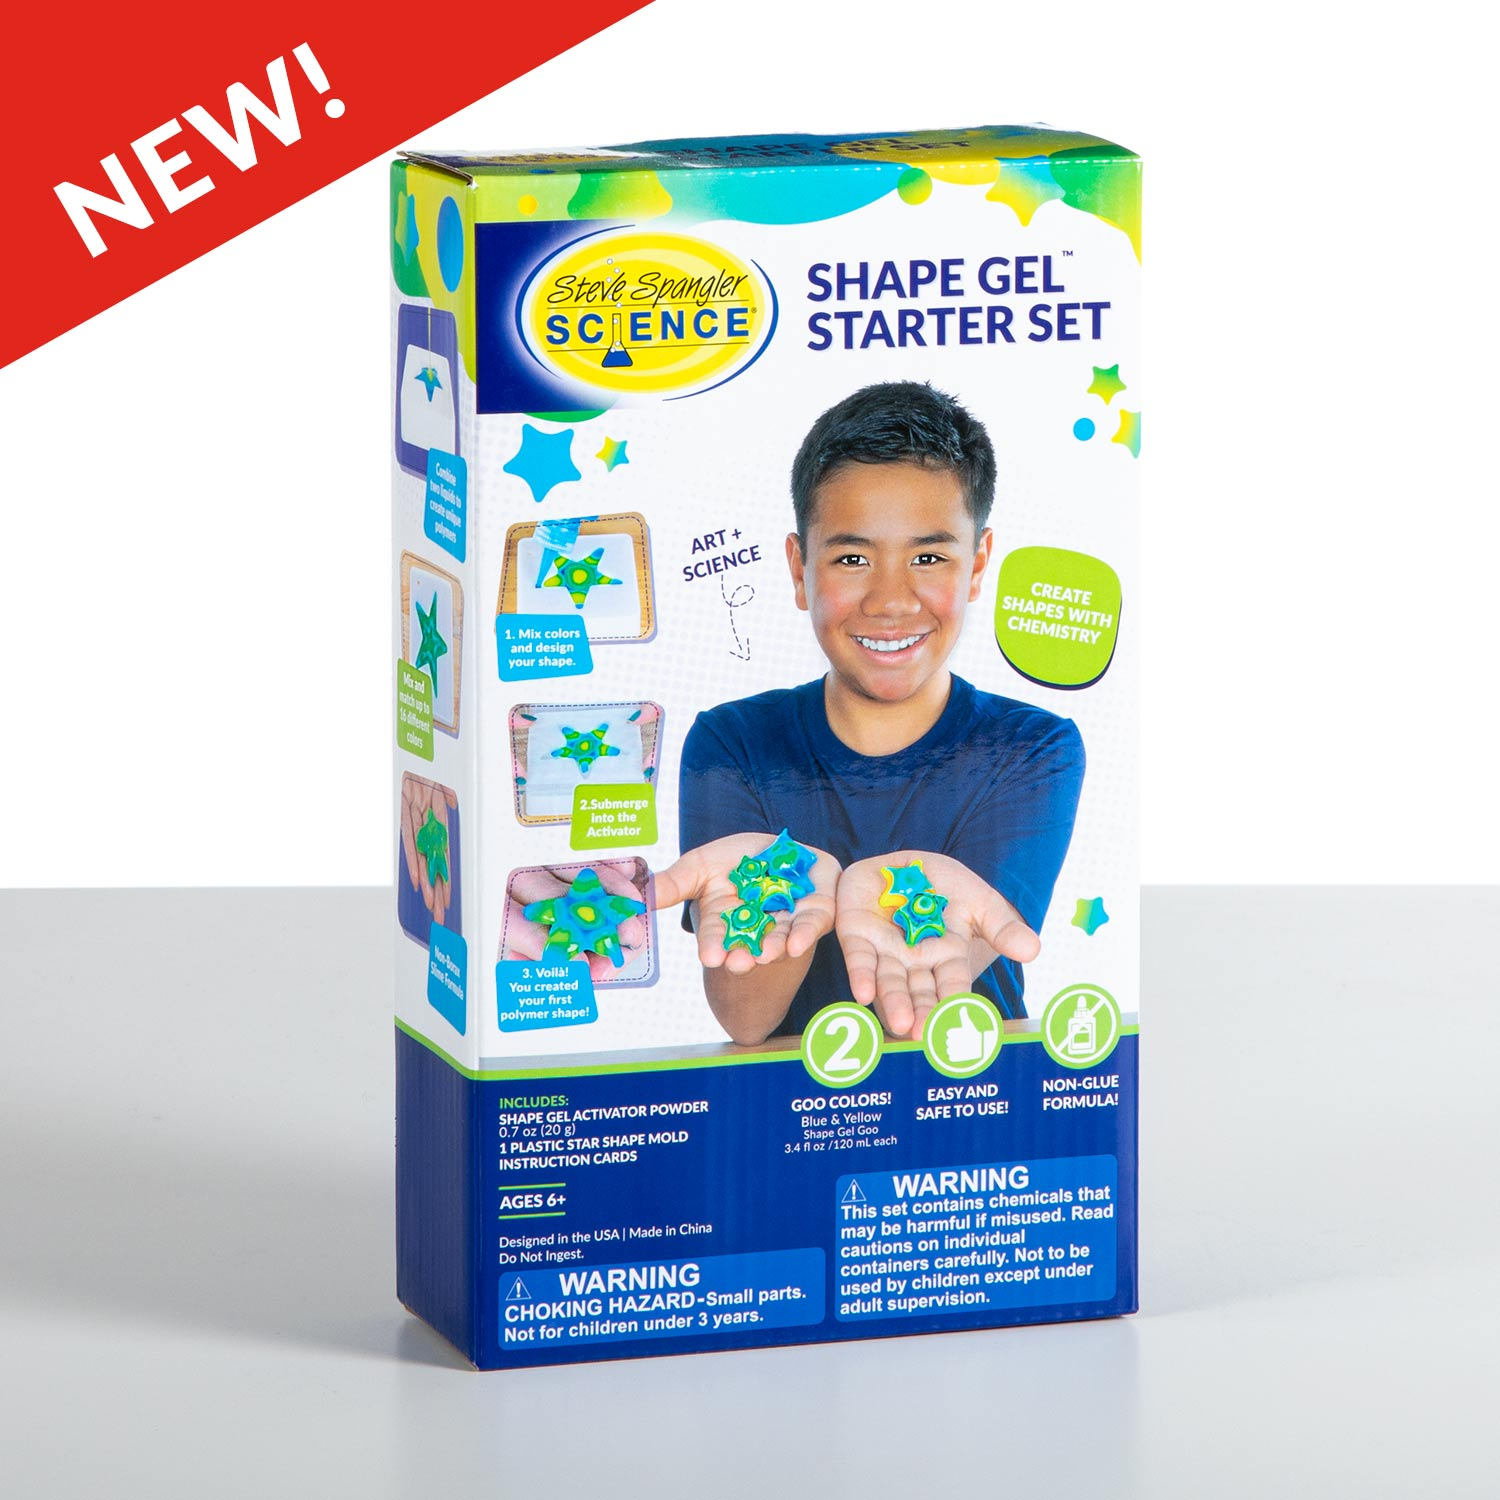 Shape Gel Starter Set